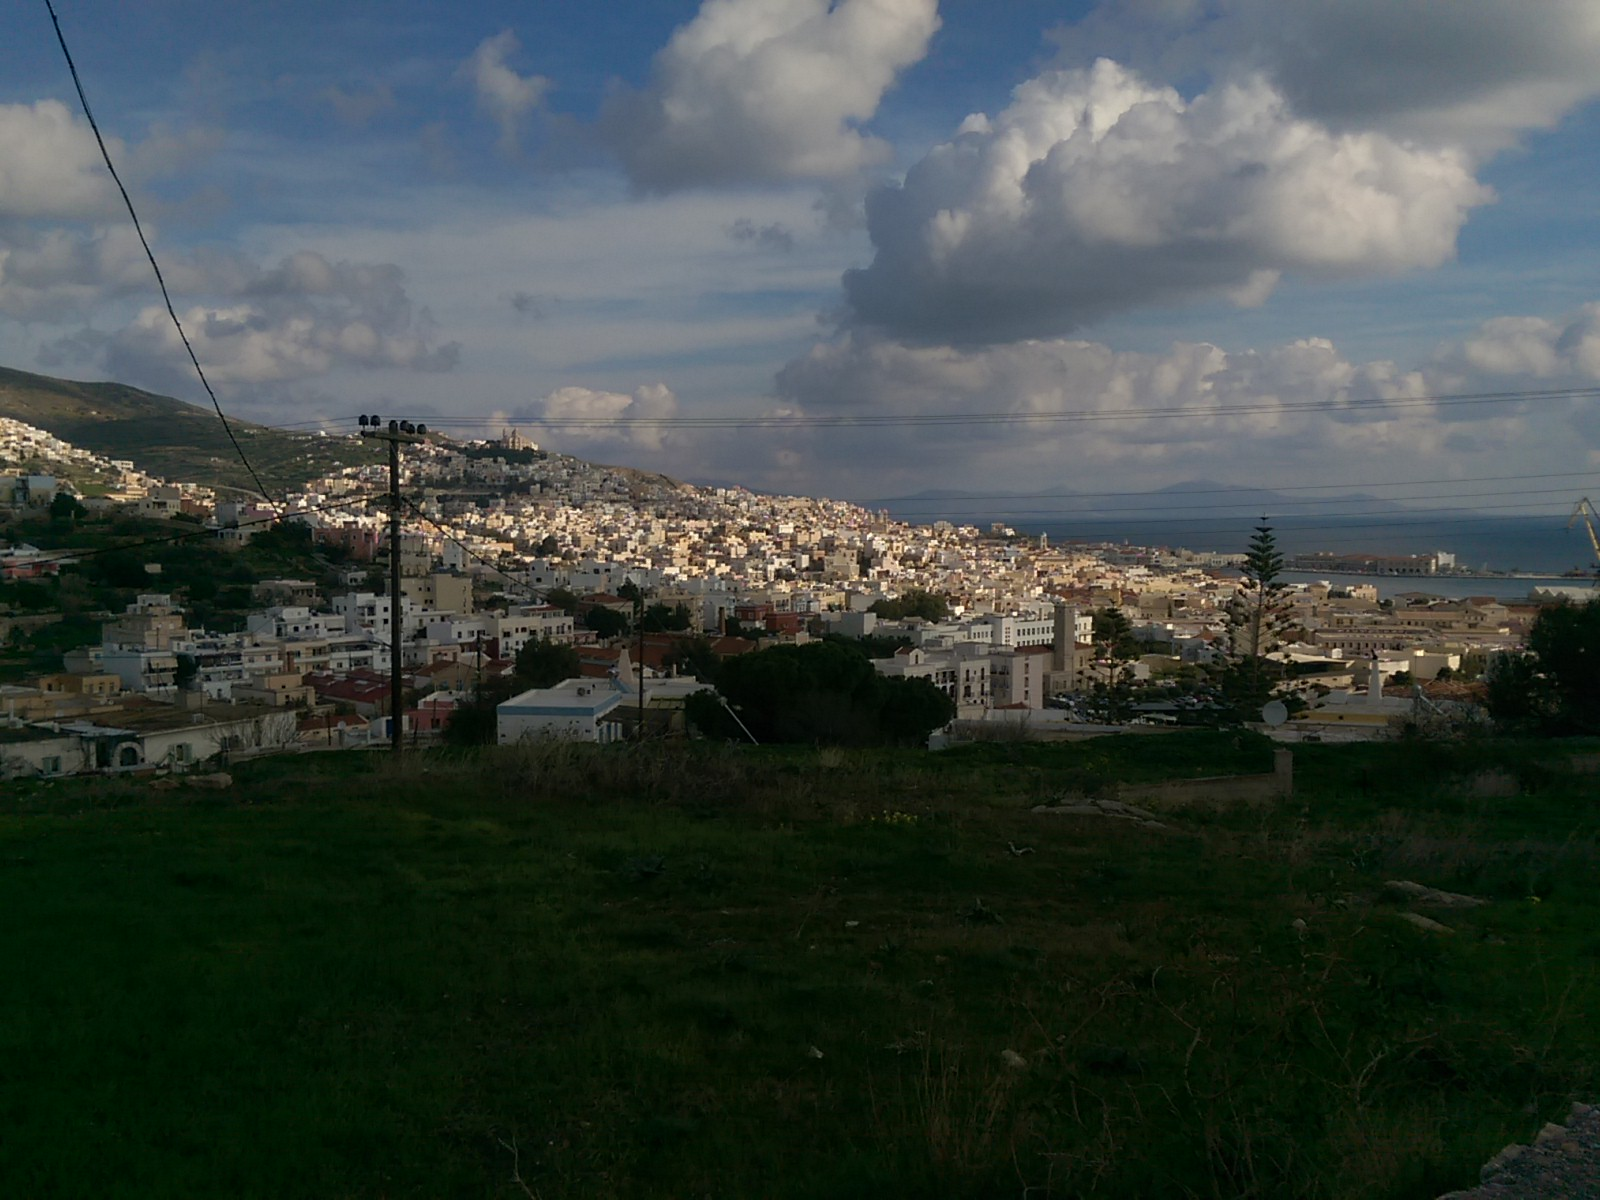 Fluffy white clouds in a blue sky; green grass in the foreground; a sprawling white town over hills, by the sea